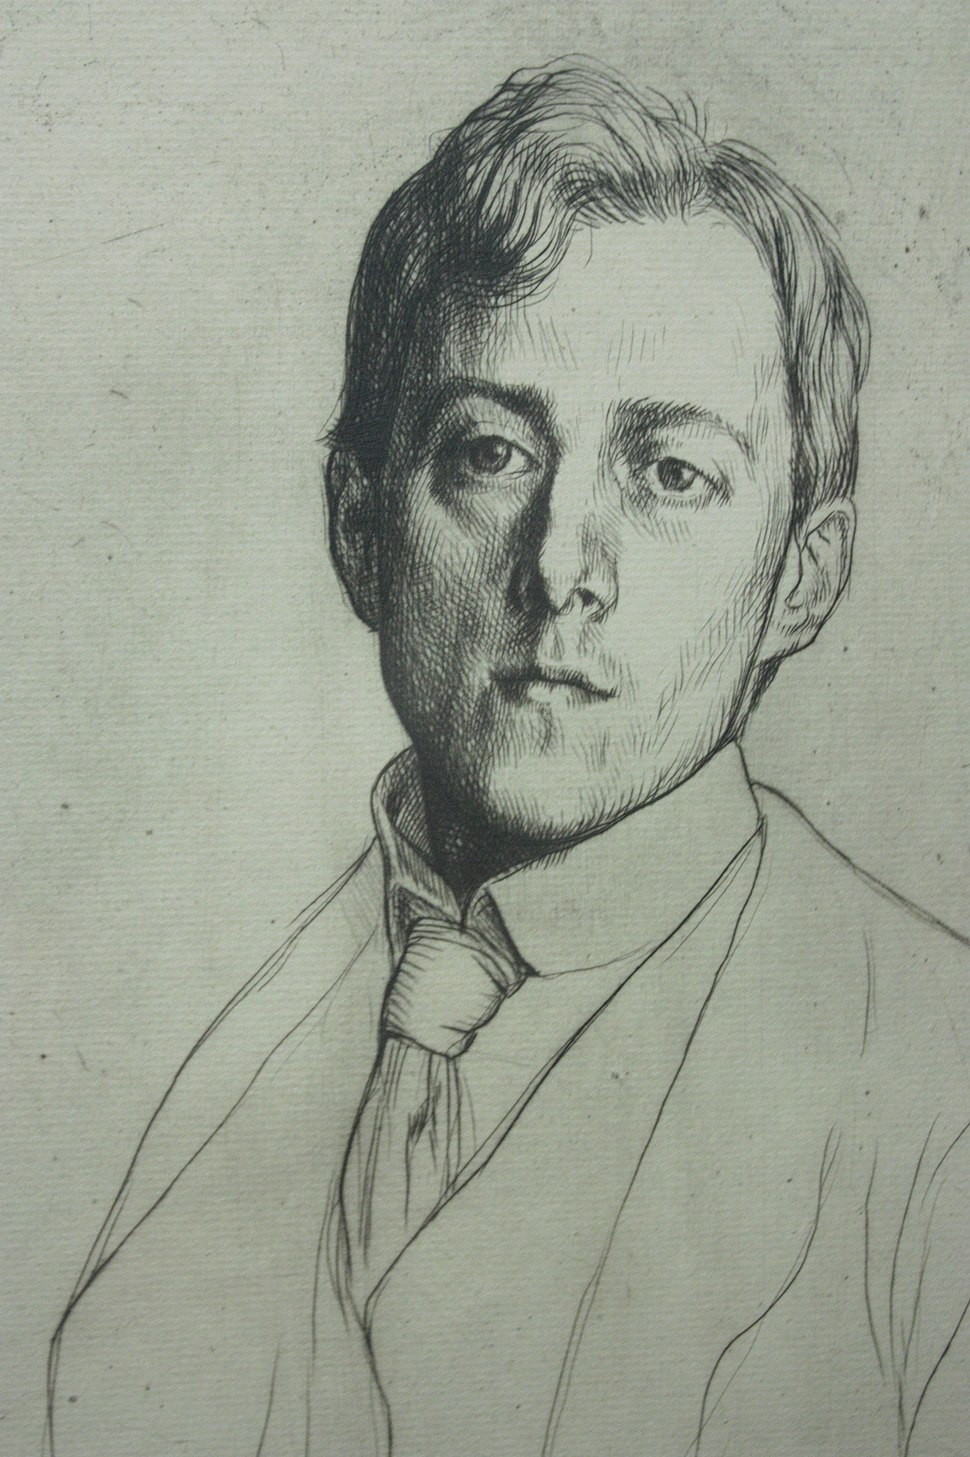 Laurence Binyon, 1898, drypoint by William Strang